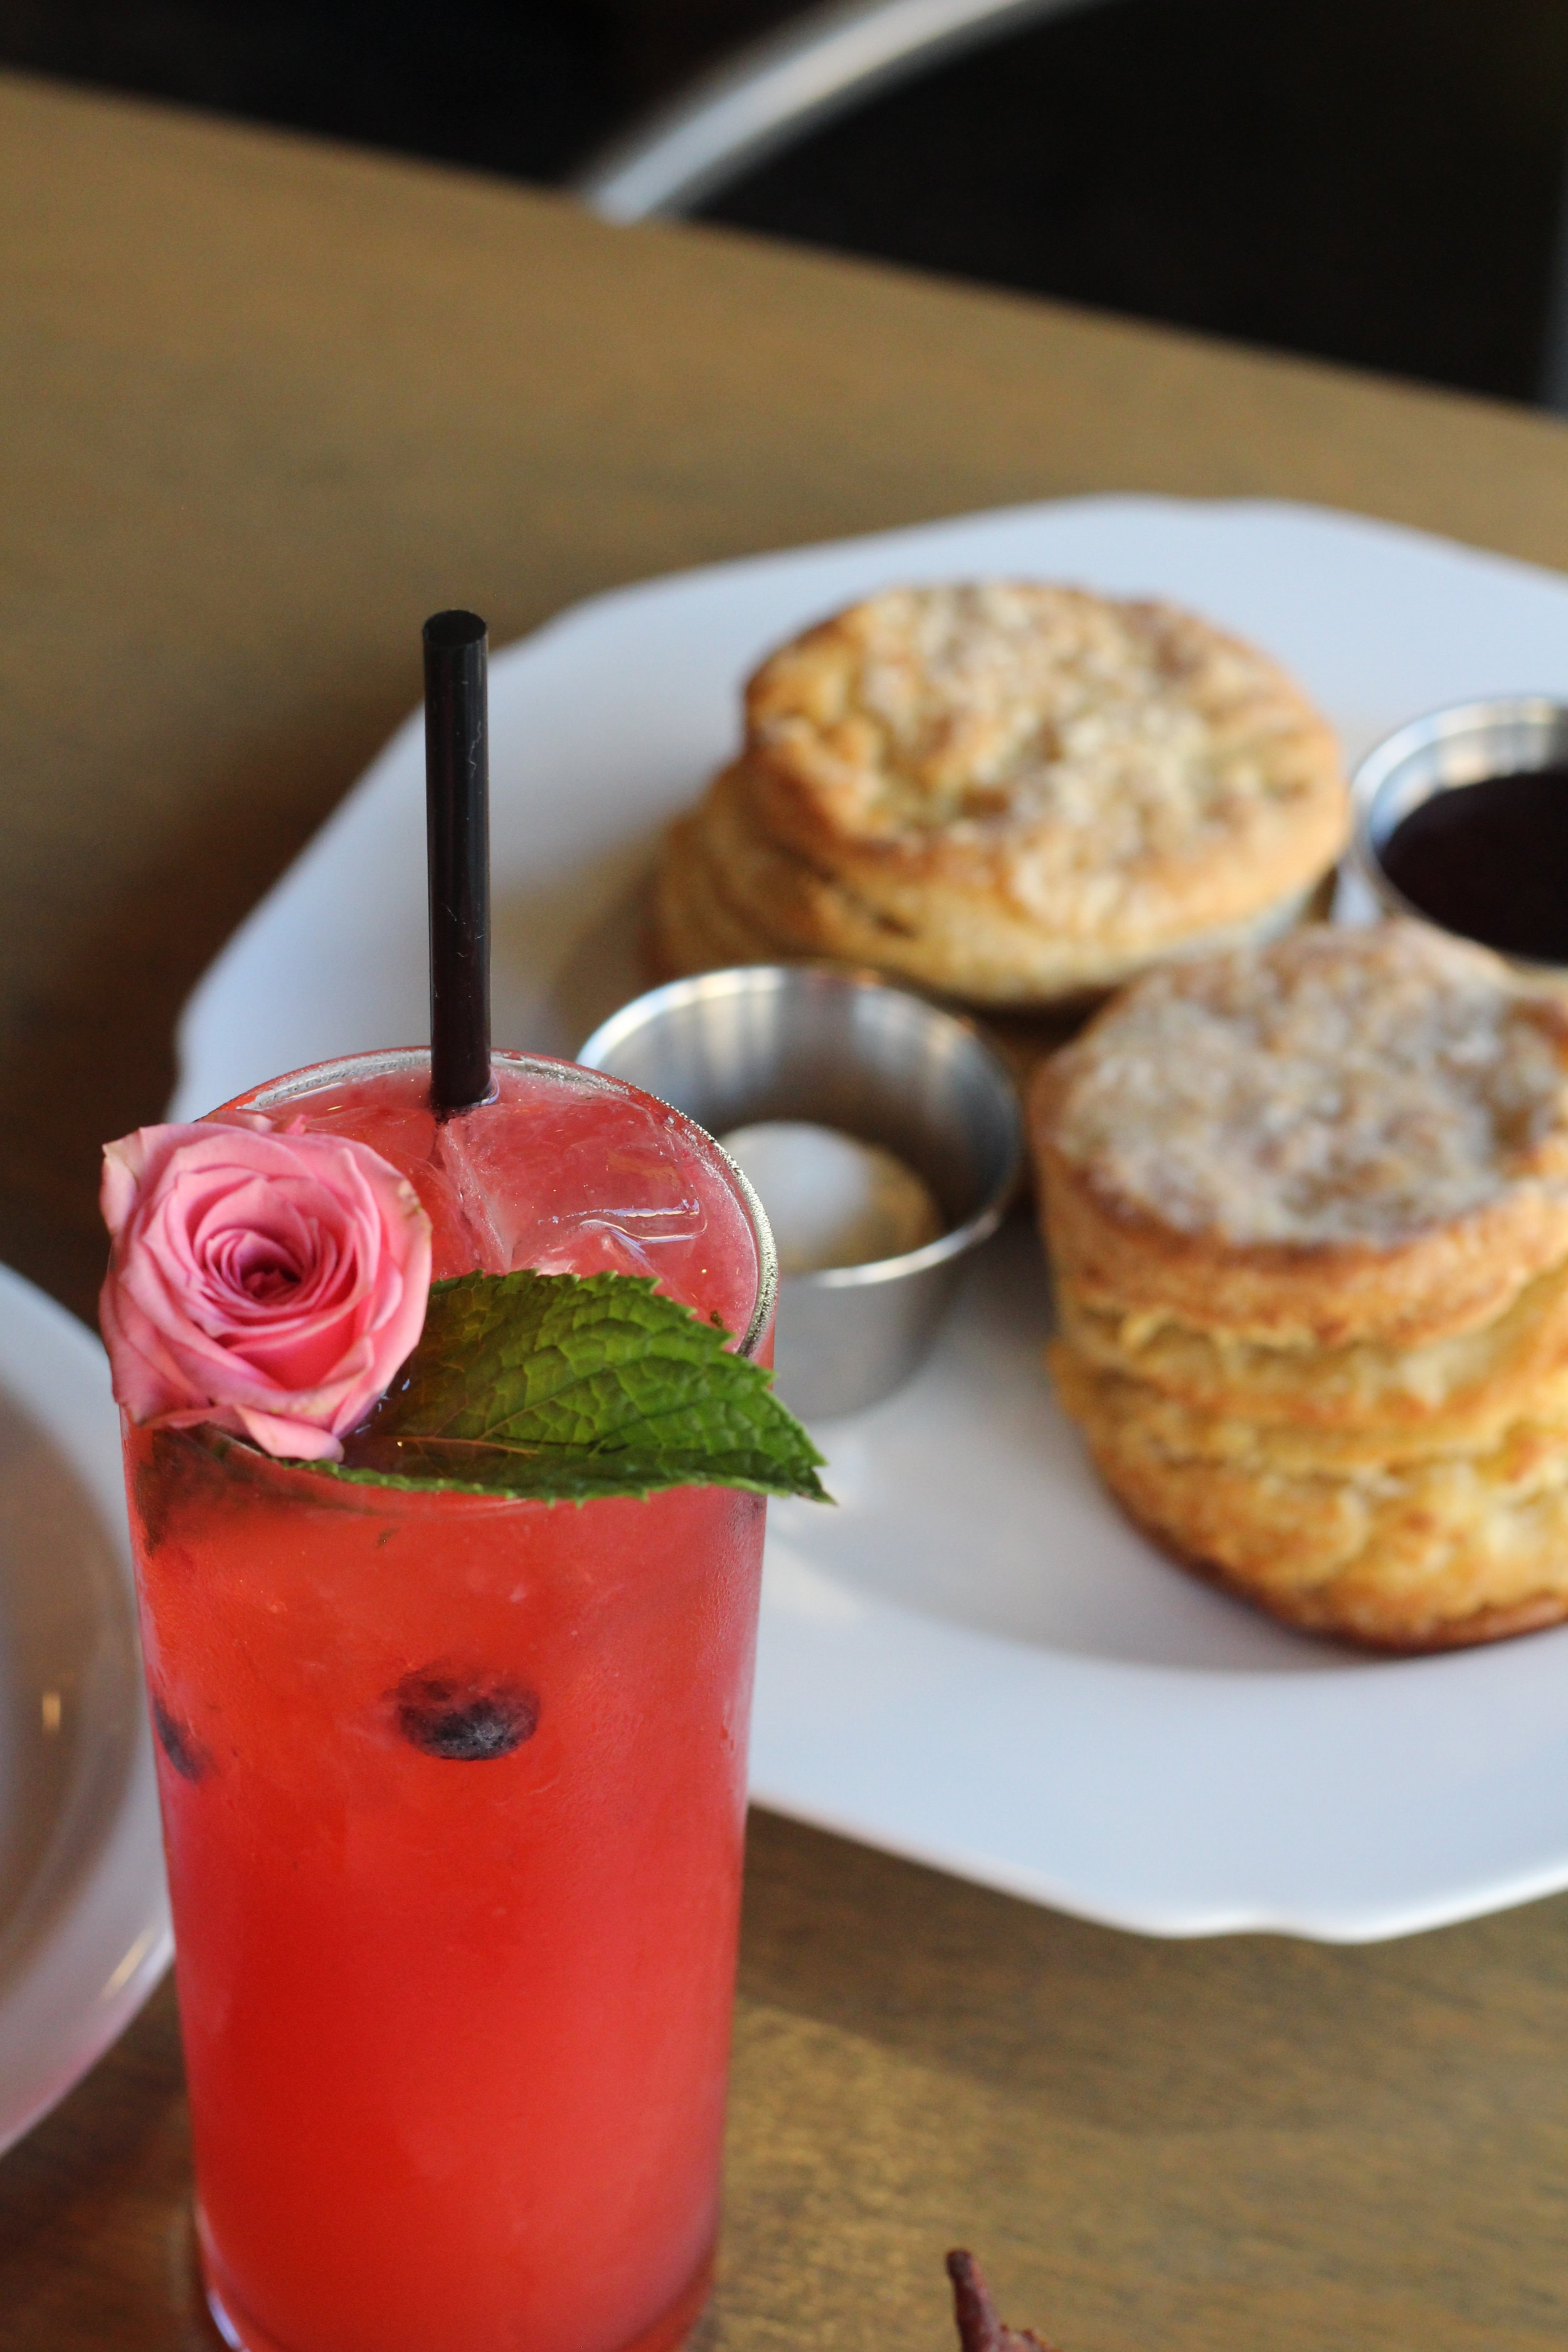 Rose Mojito with biscuits